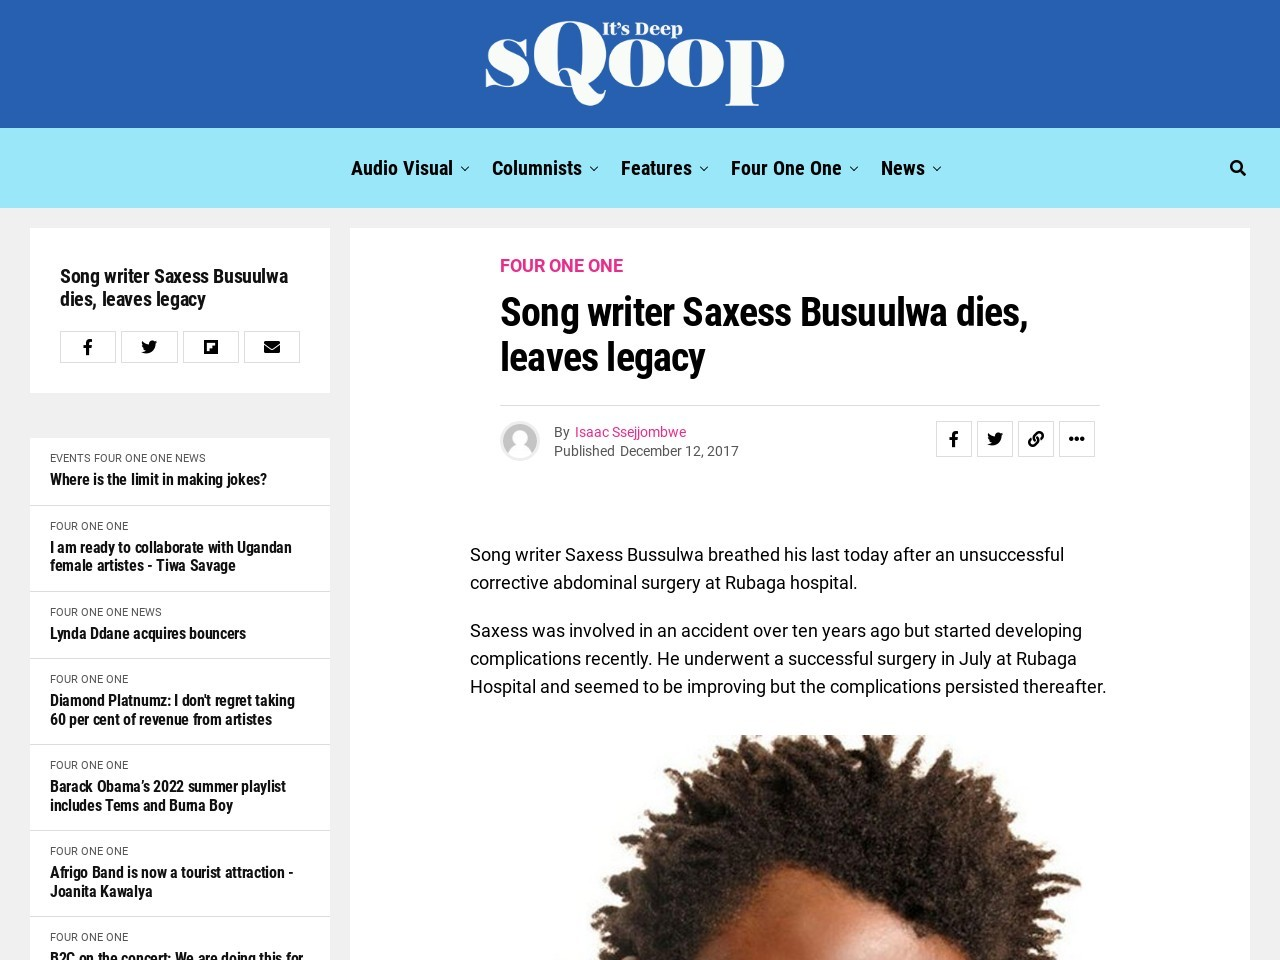 Song writer Saxess Busuulwa dies, leaves legacy